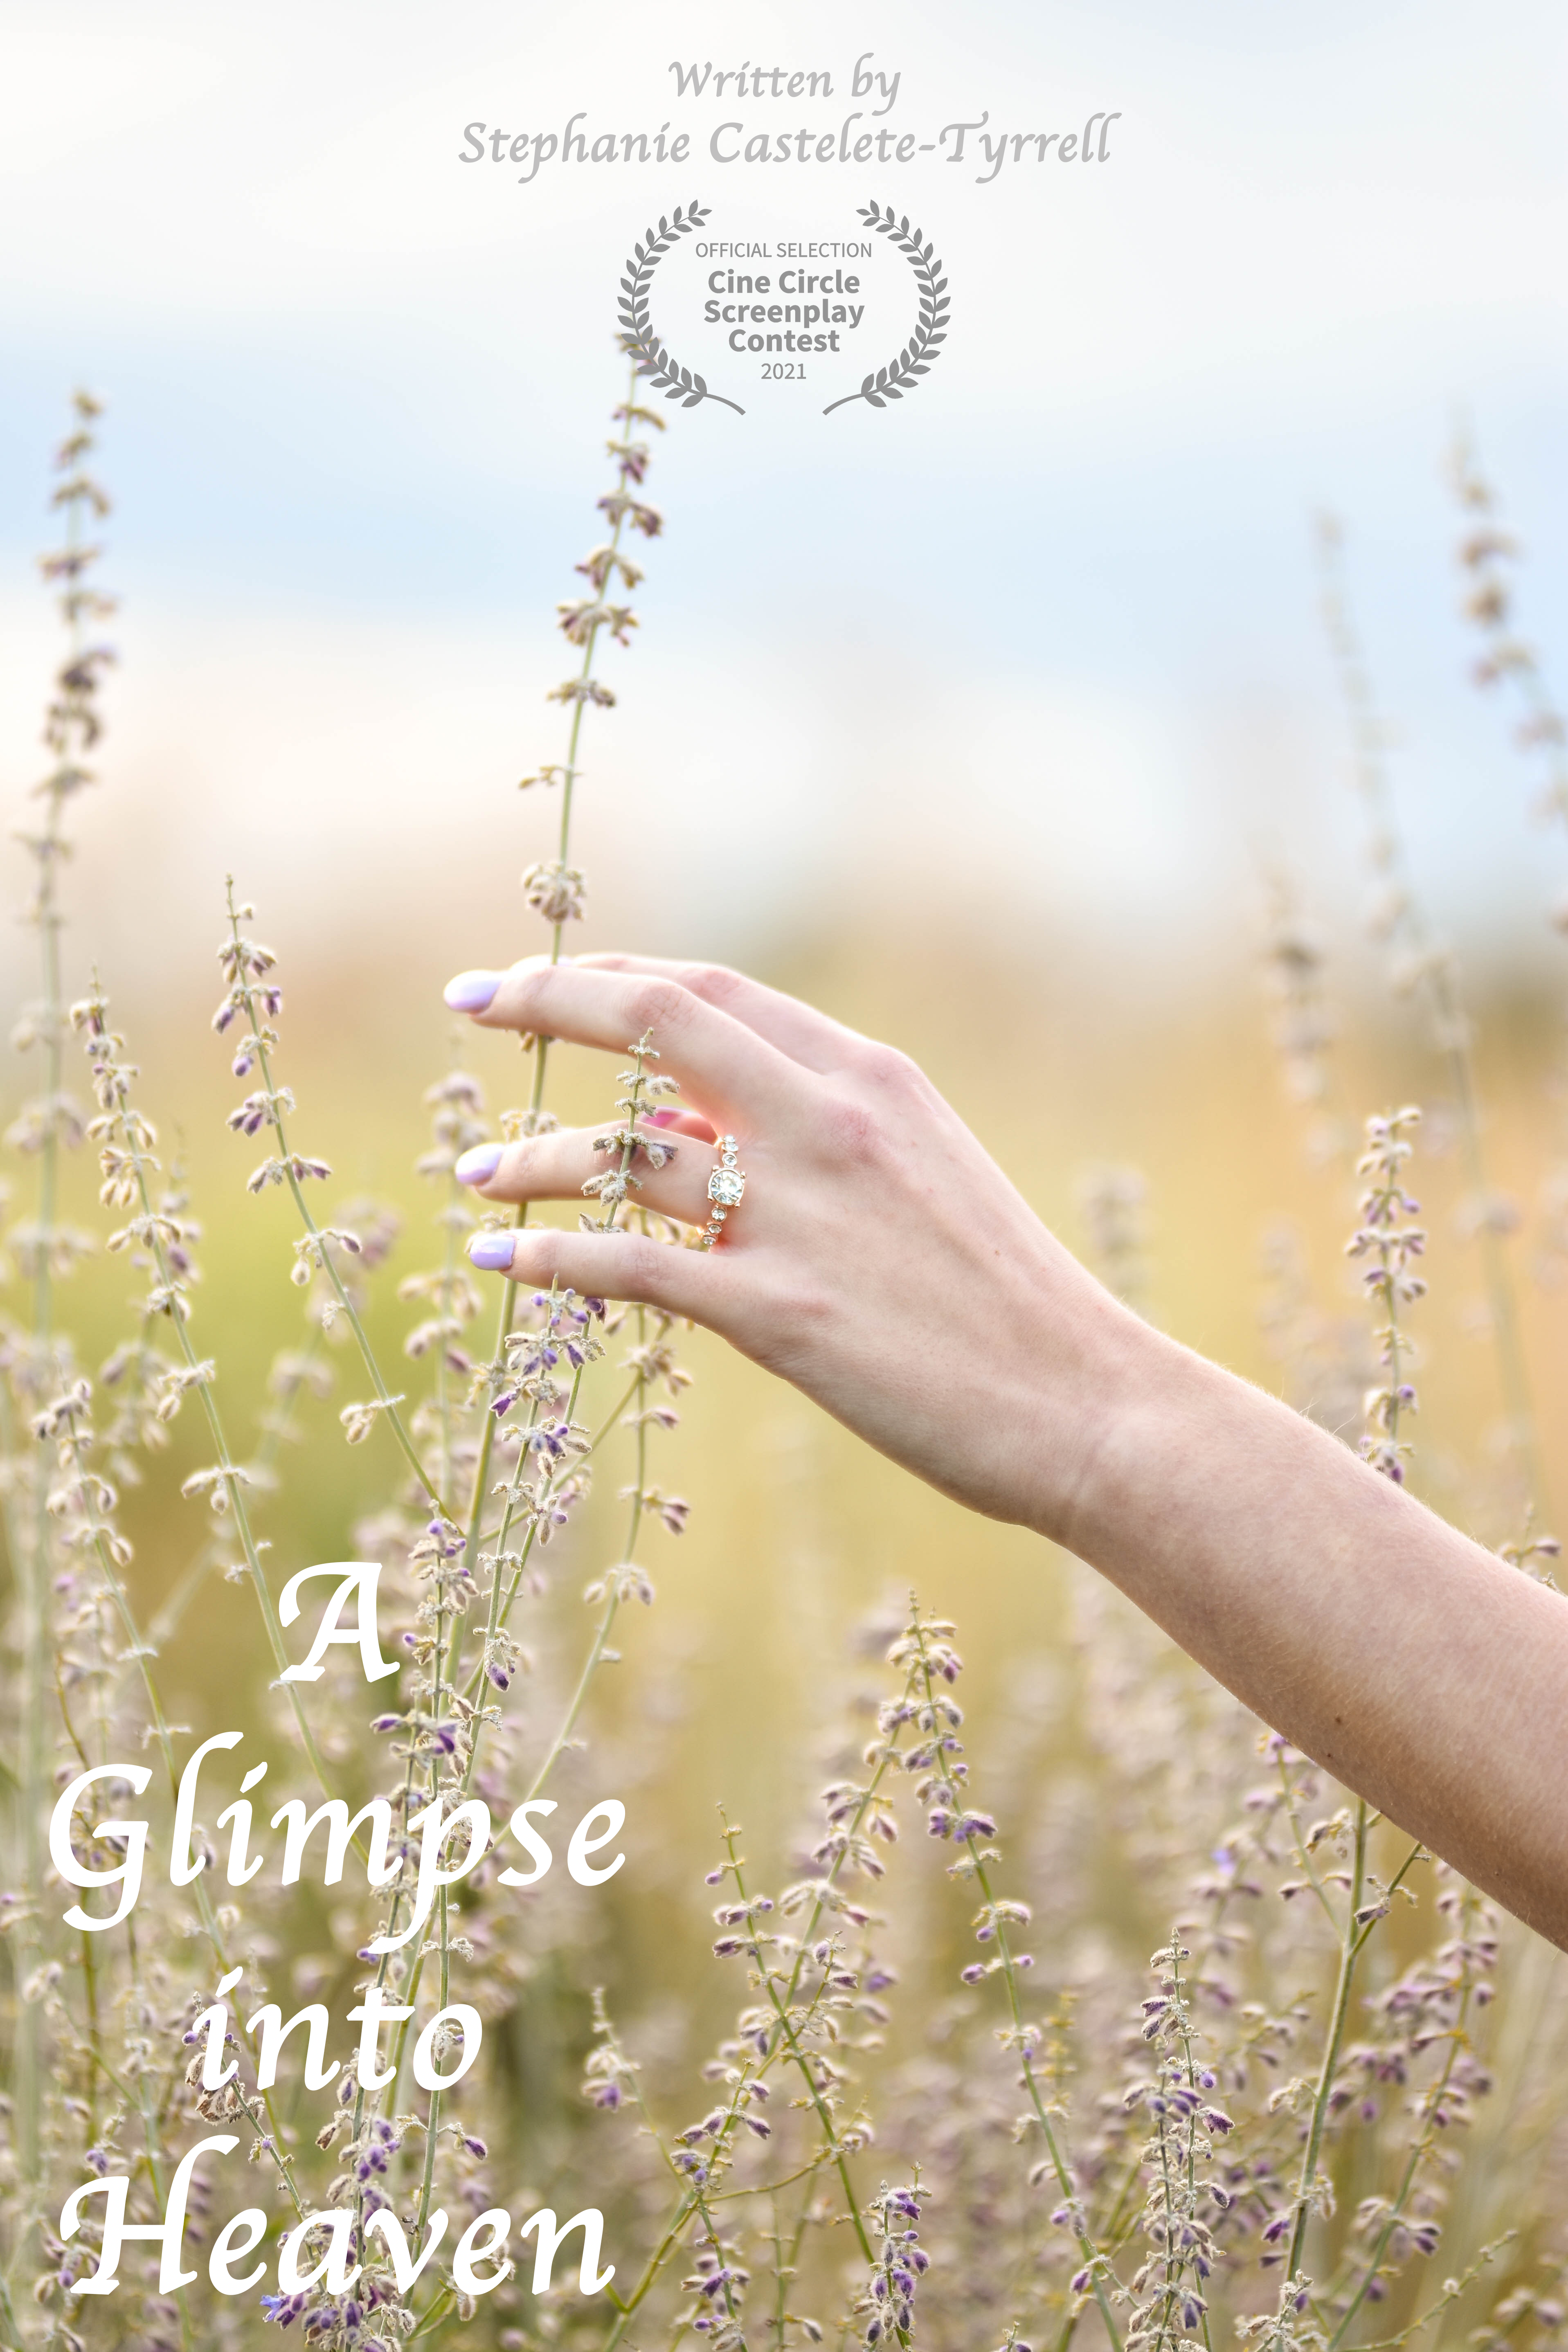 A Glimpse into Heaven poster - a women's hand is touching a flower in a field